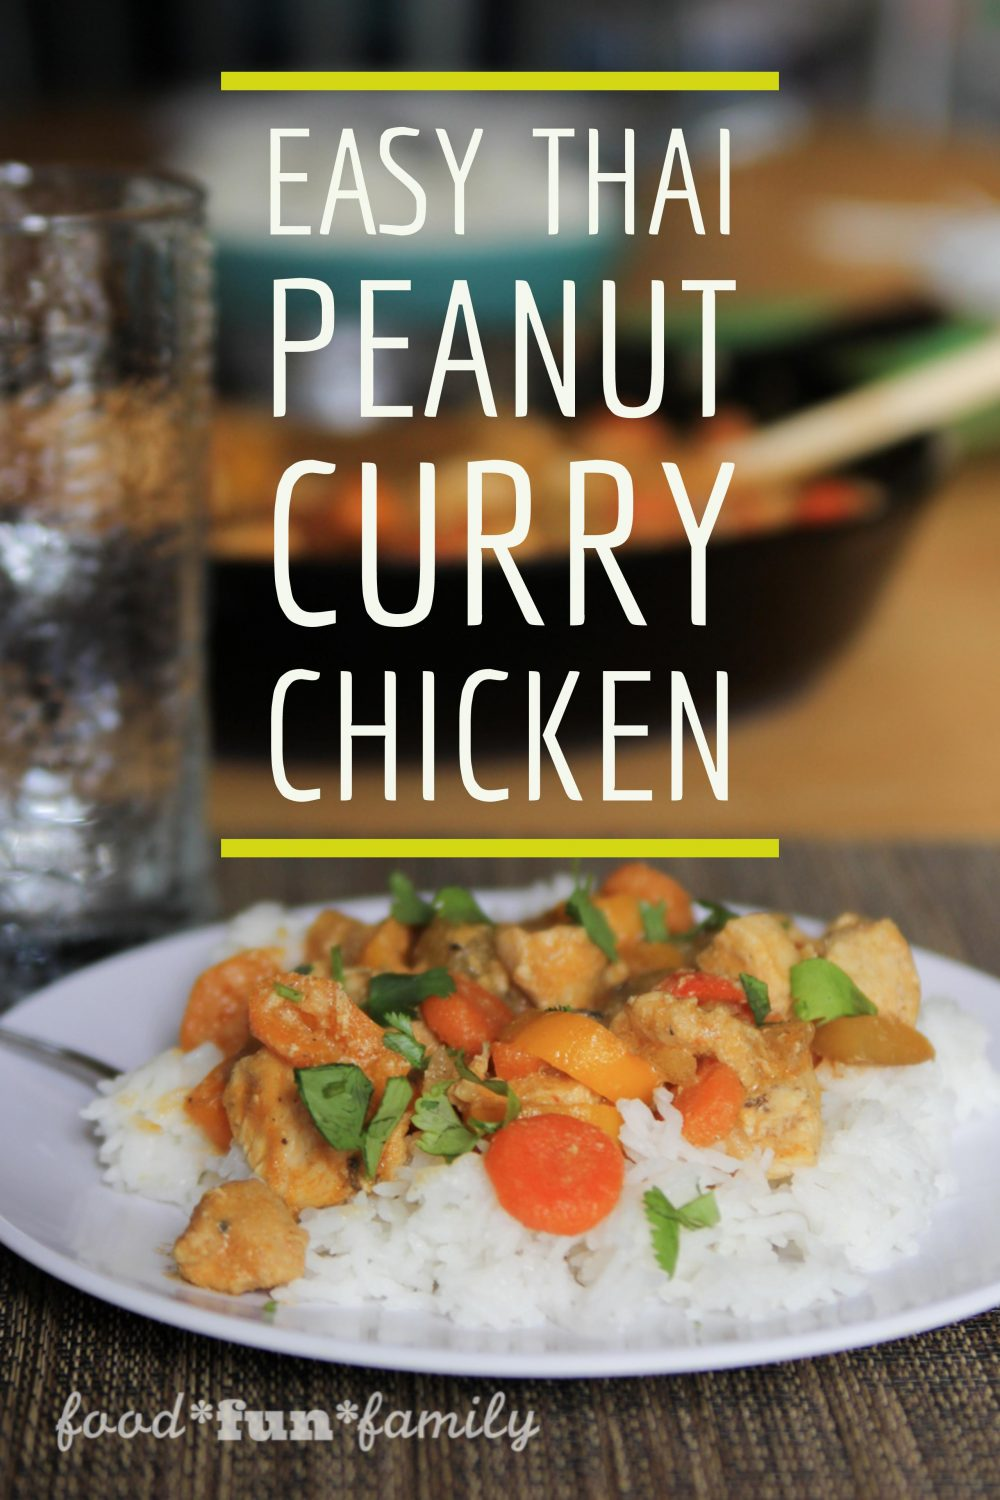 Easy Thai Peanut Curry Chicken - a quick one-skillet family dinner that is ready in about 30 minutes!